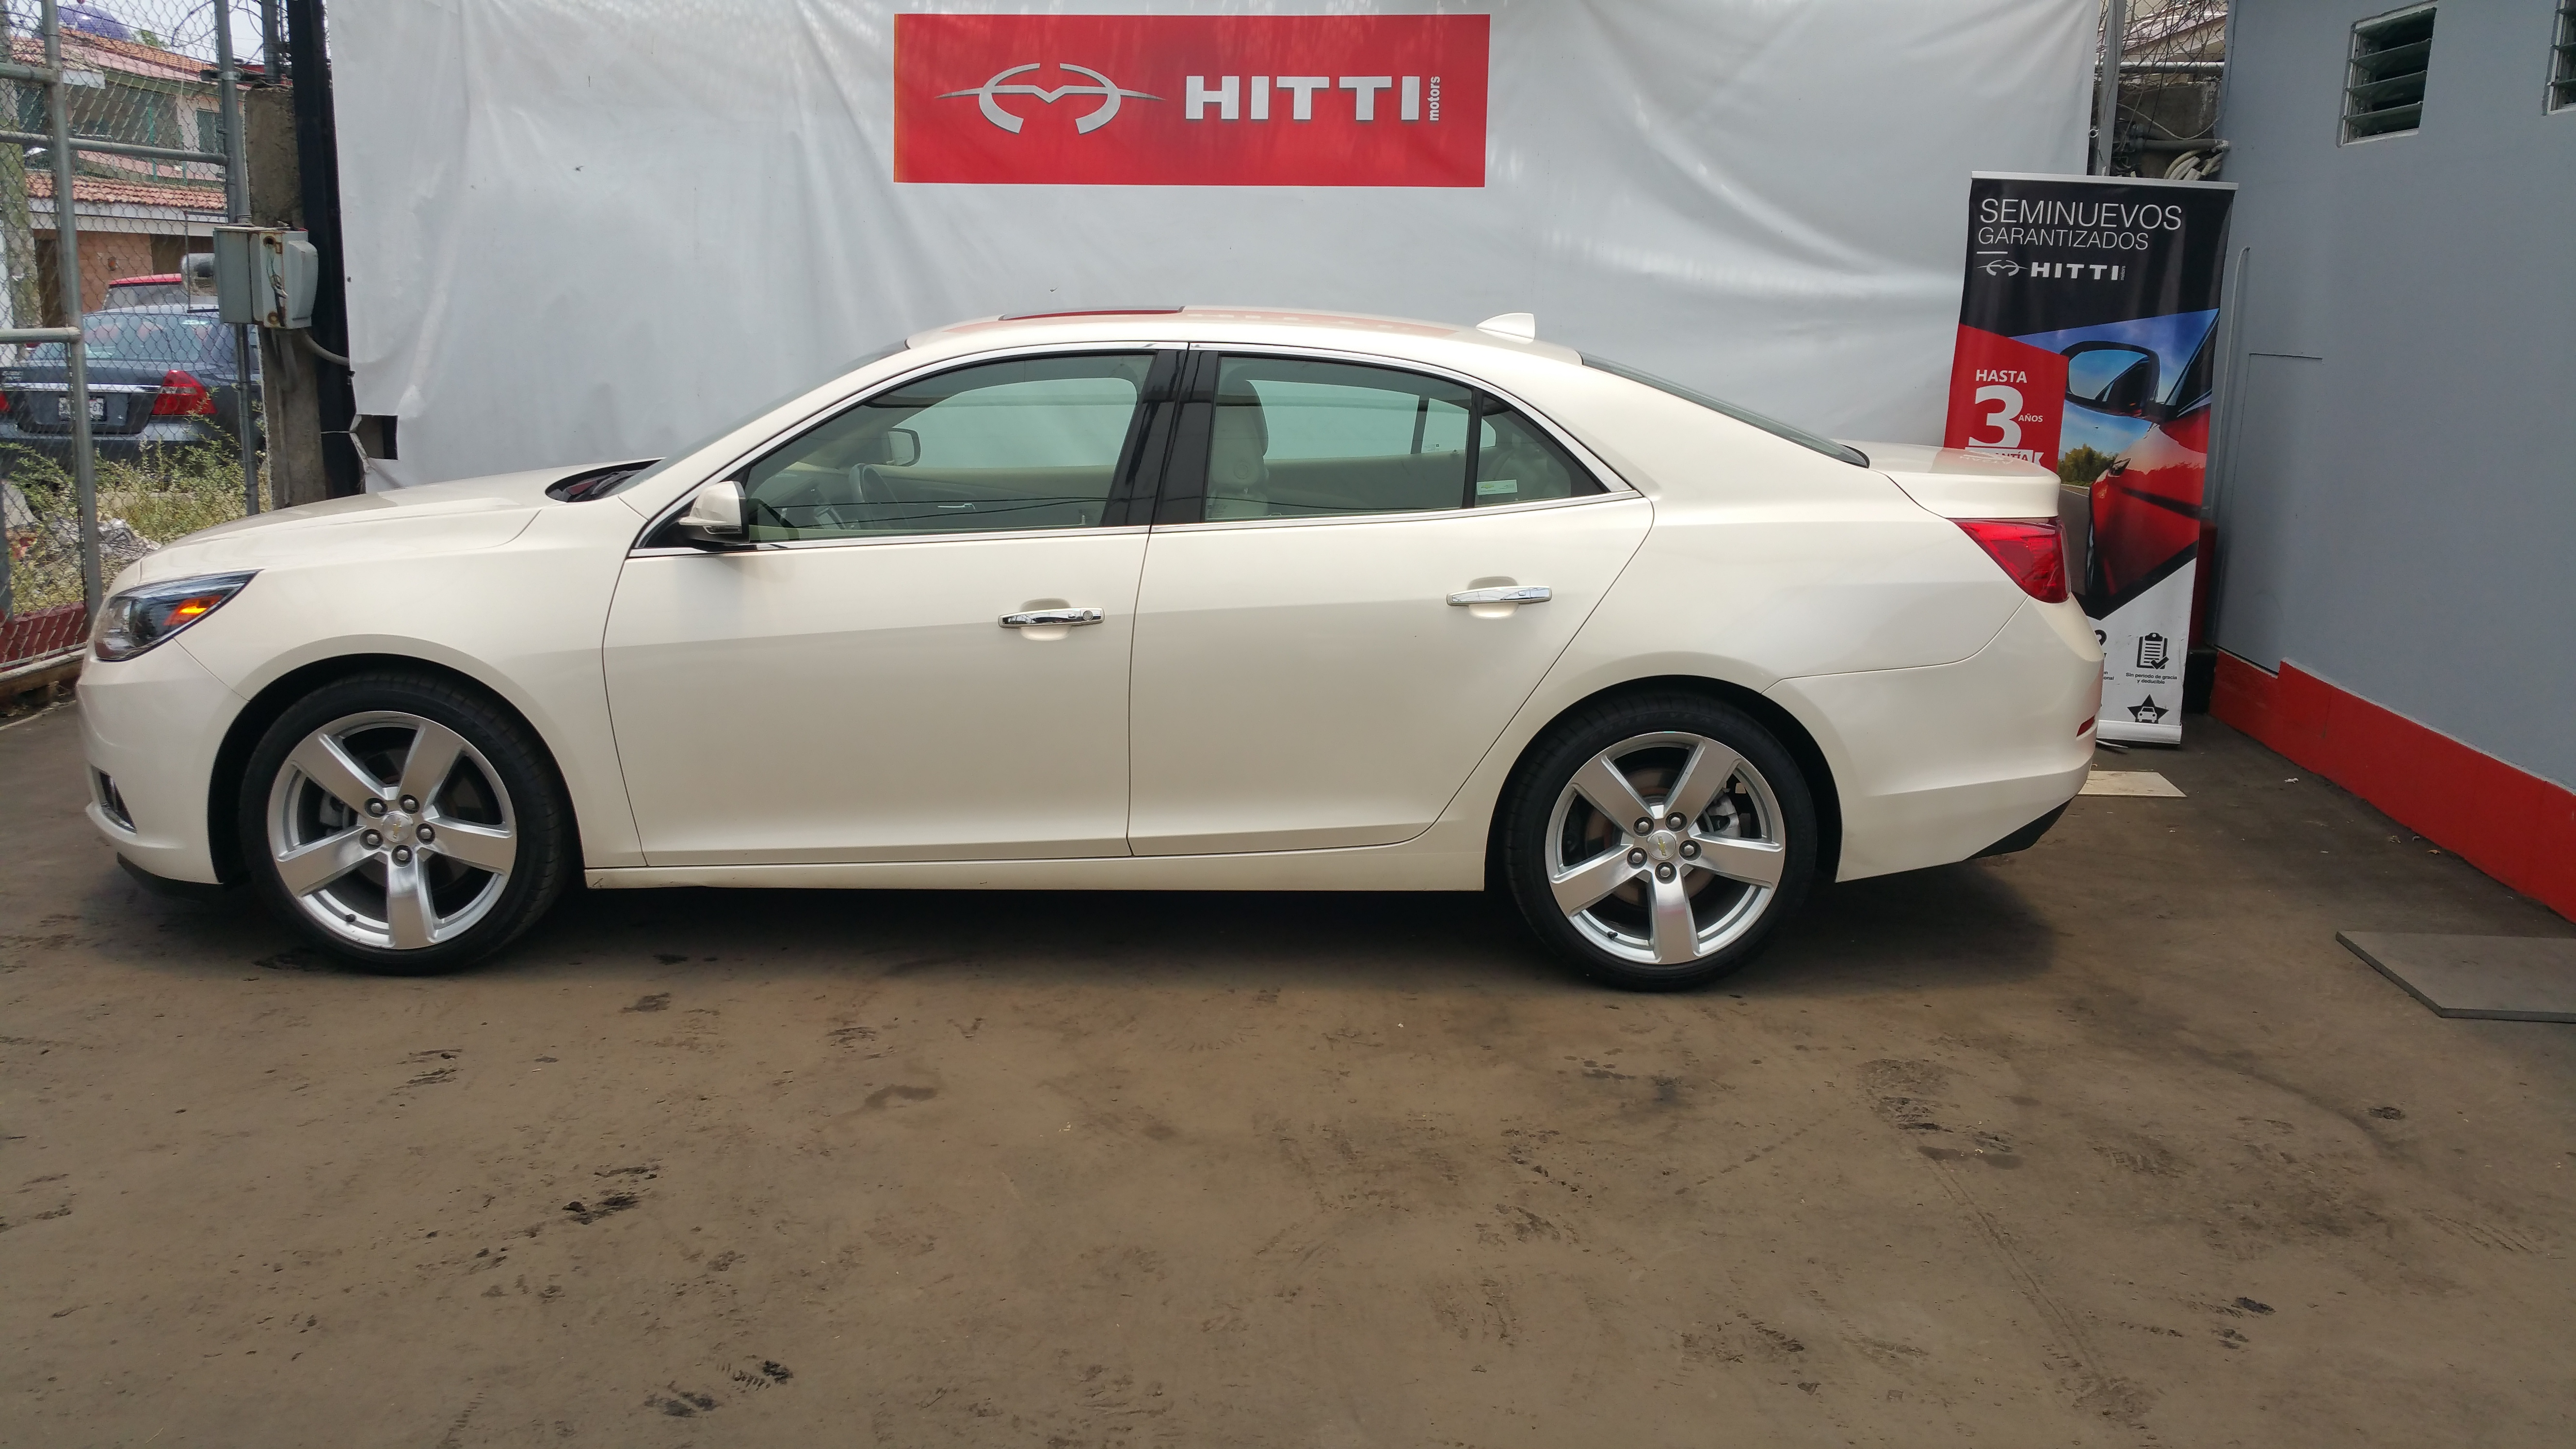 IMPECABLE CHEVROLET MALIBU 2013 LTZ BLANCO DIAMANTE.